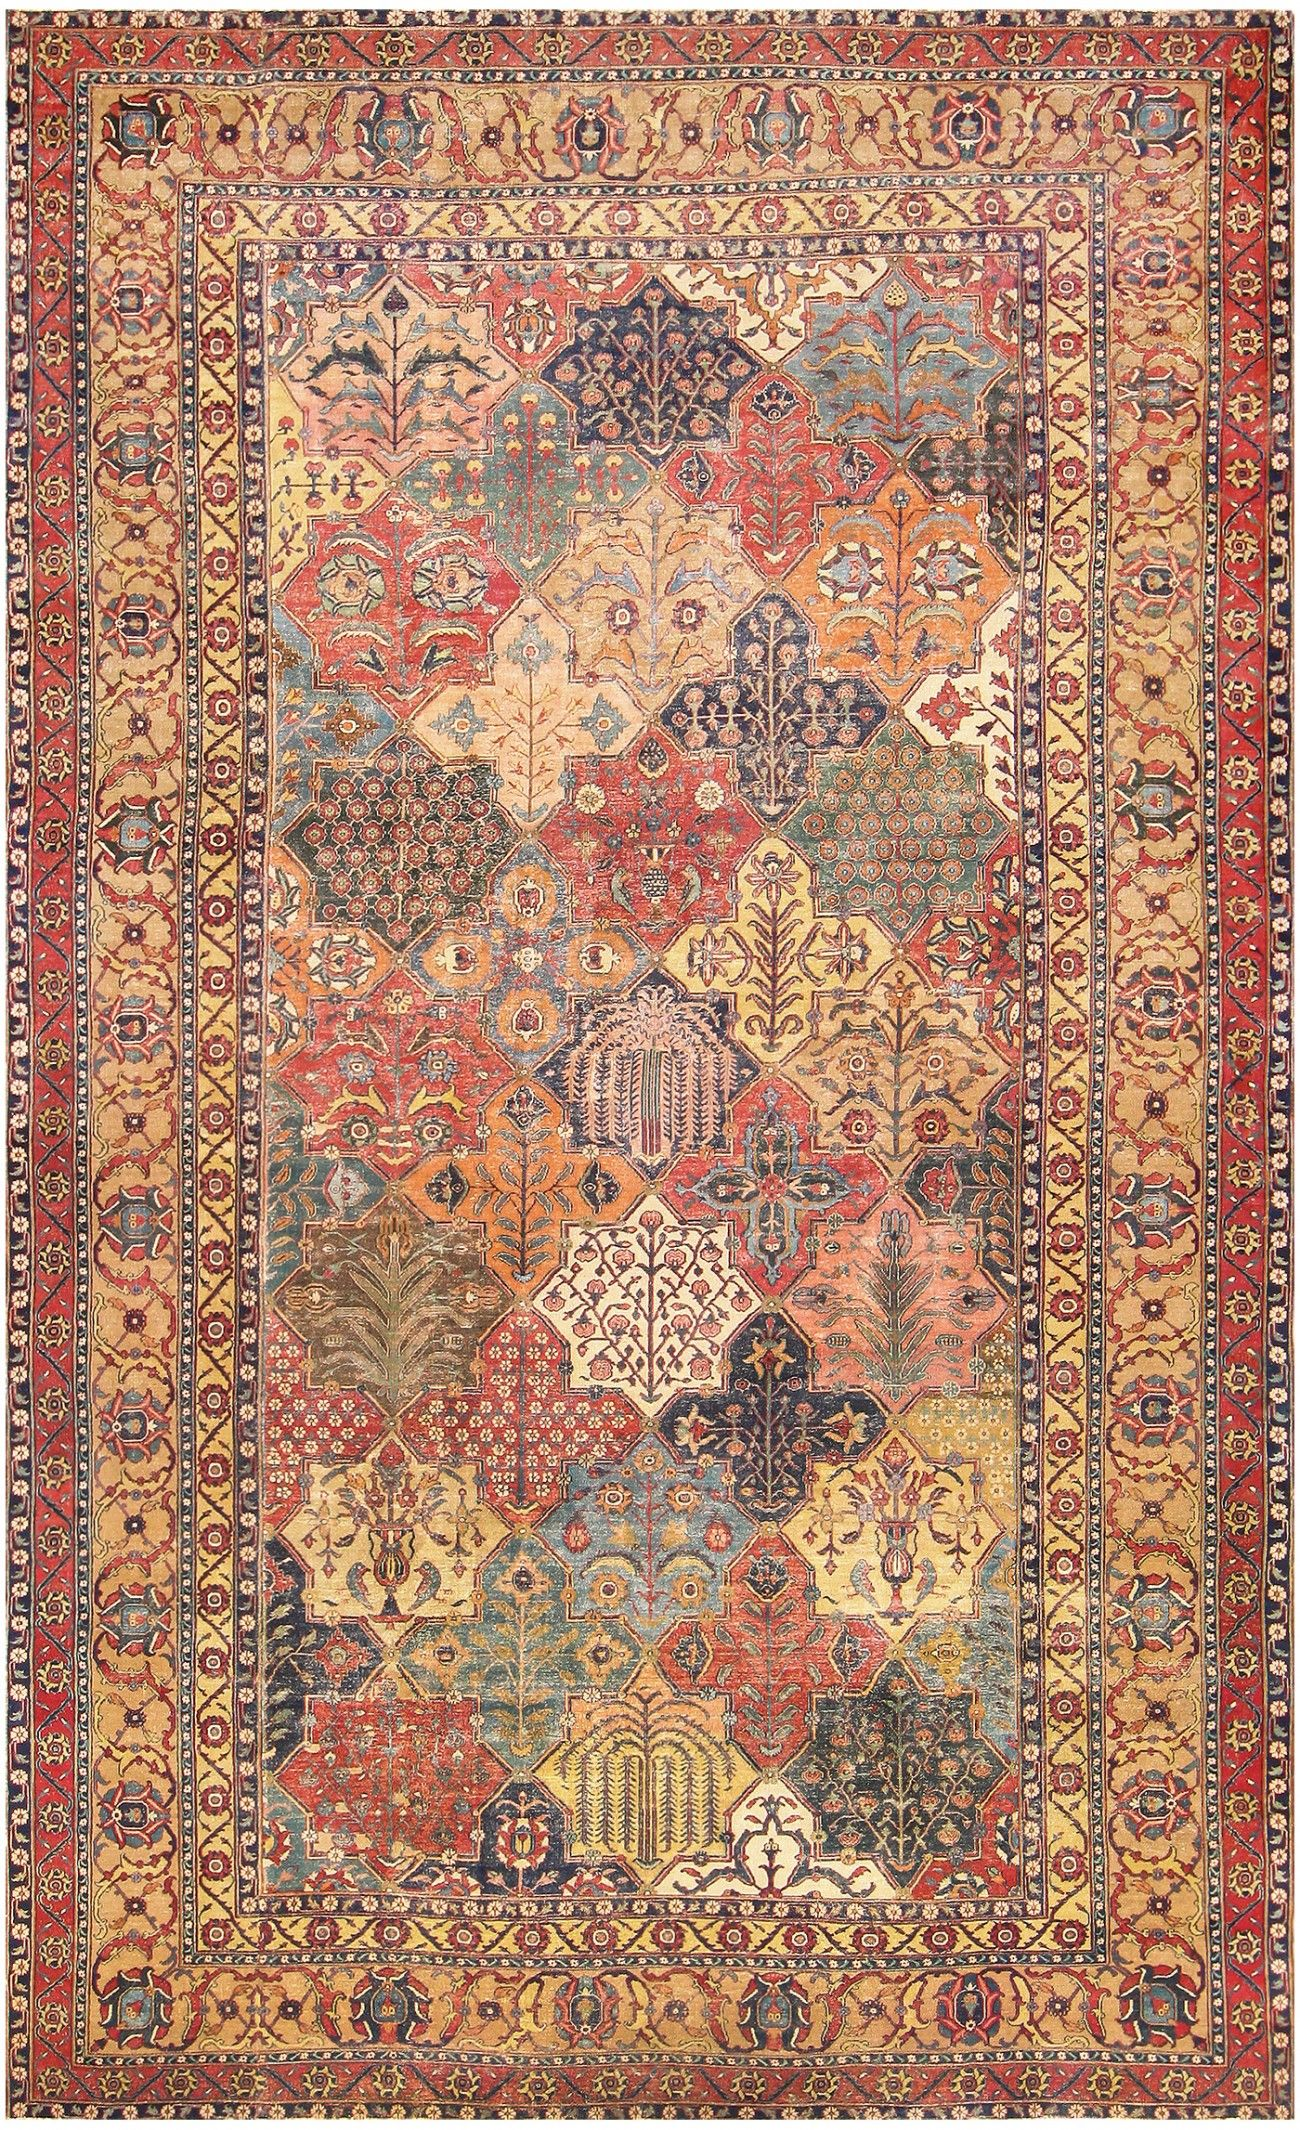 17th Century Persian Khorassan Carpet From William A Clark 47074 Rugs On Carpet Rugs Persian Carpet